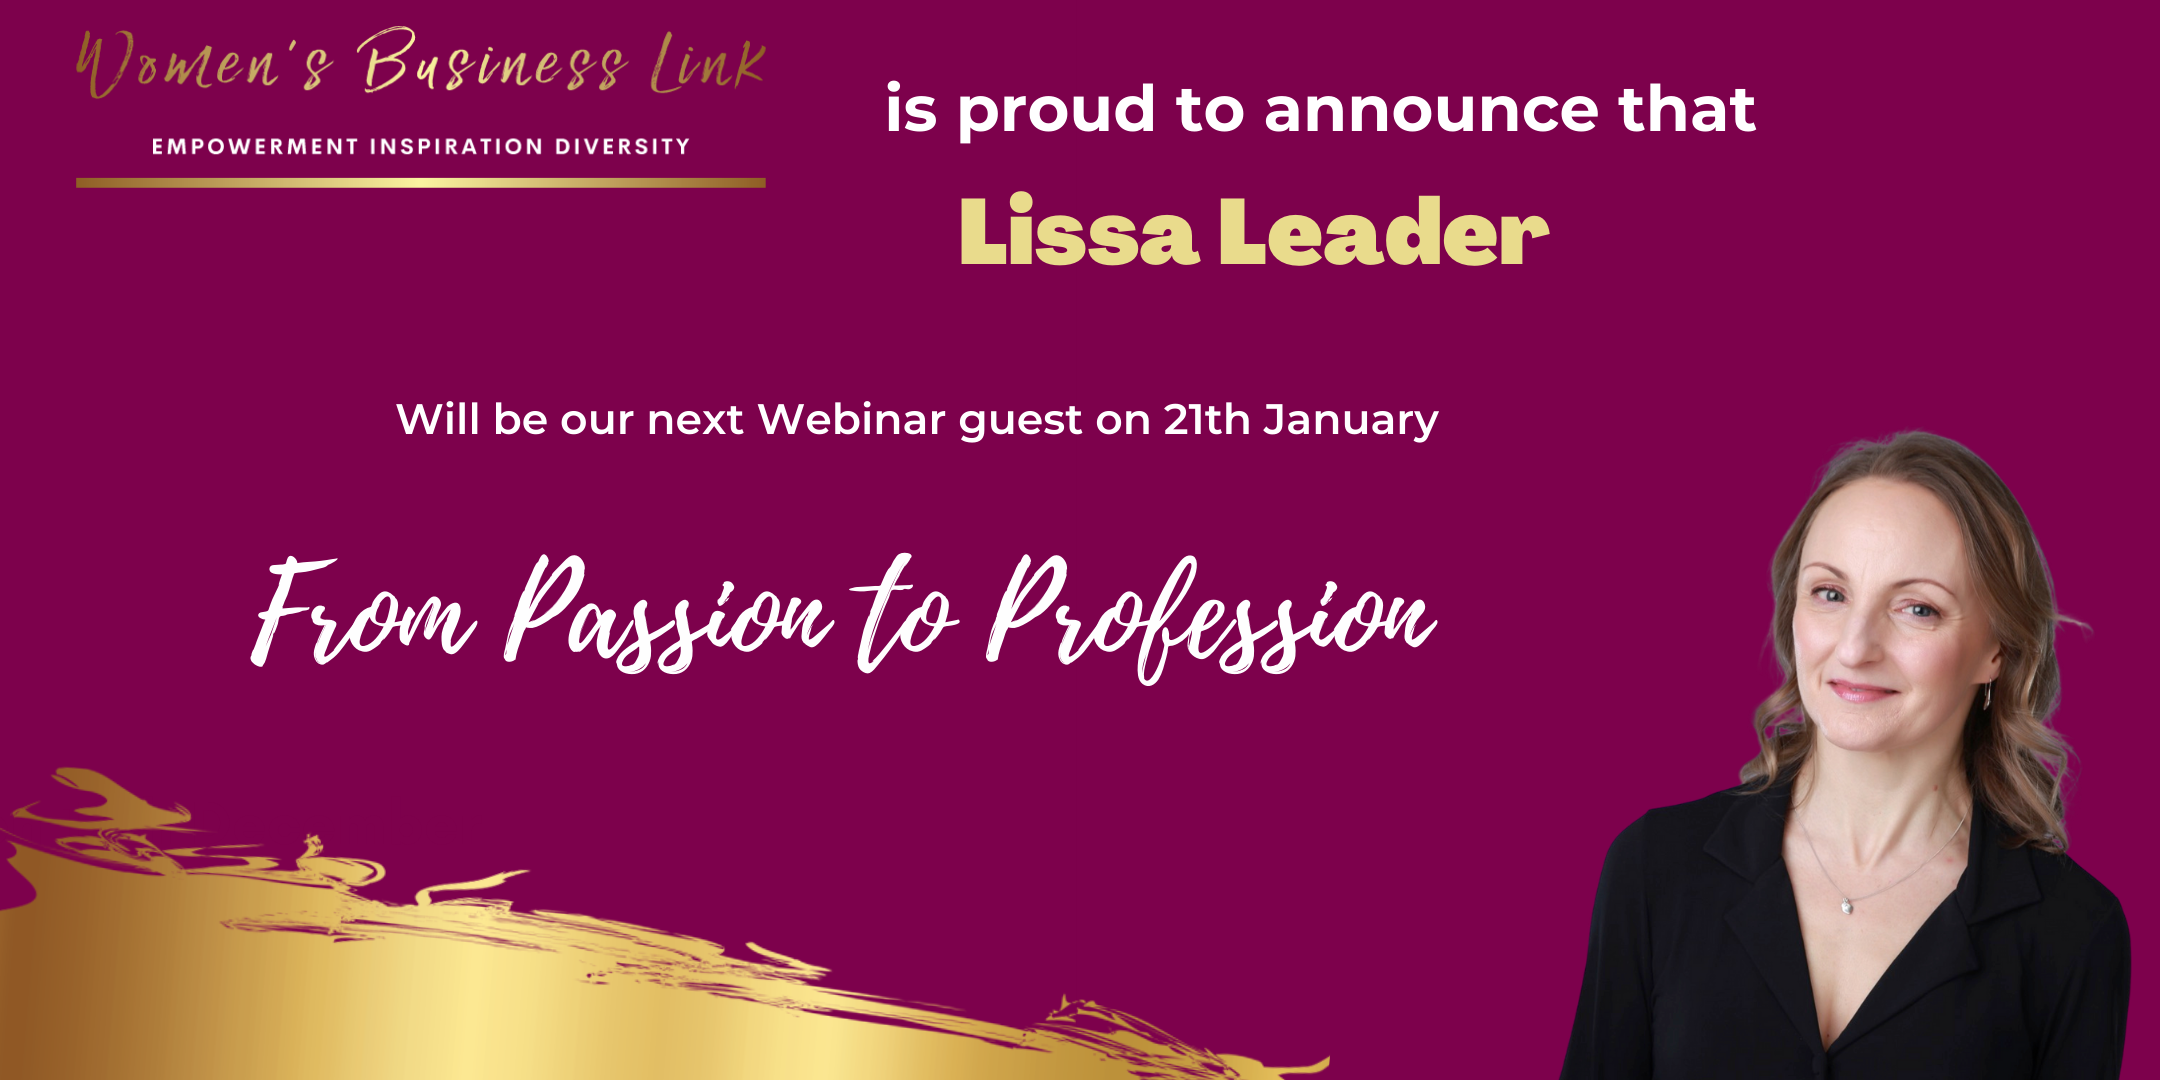 From Passion to Profession. A Women's Business Link webinar with Lissa Leader.